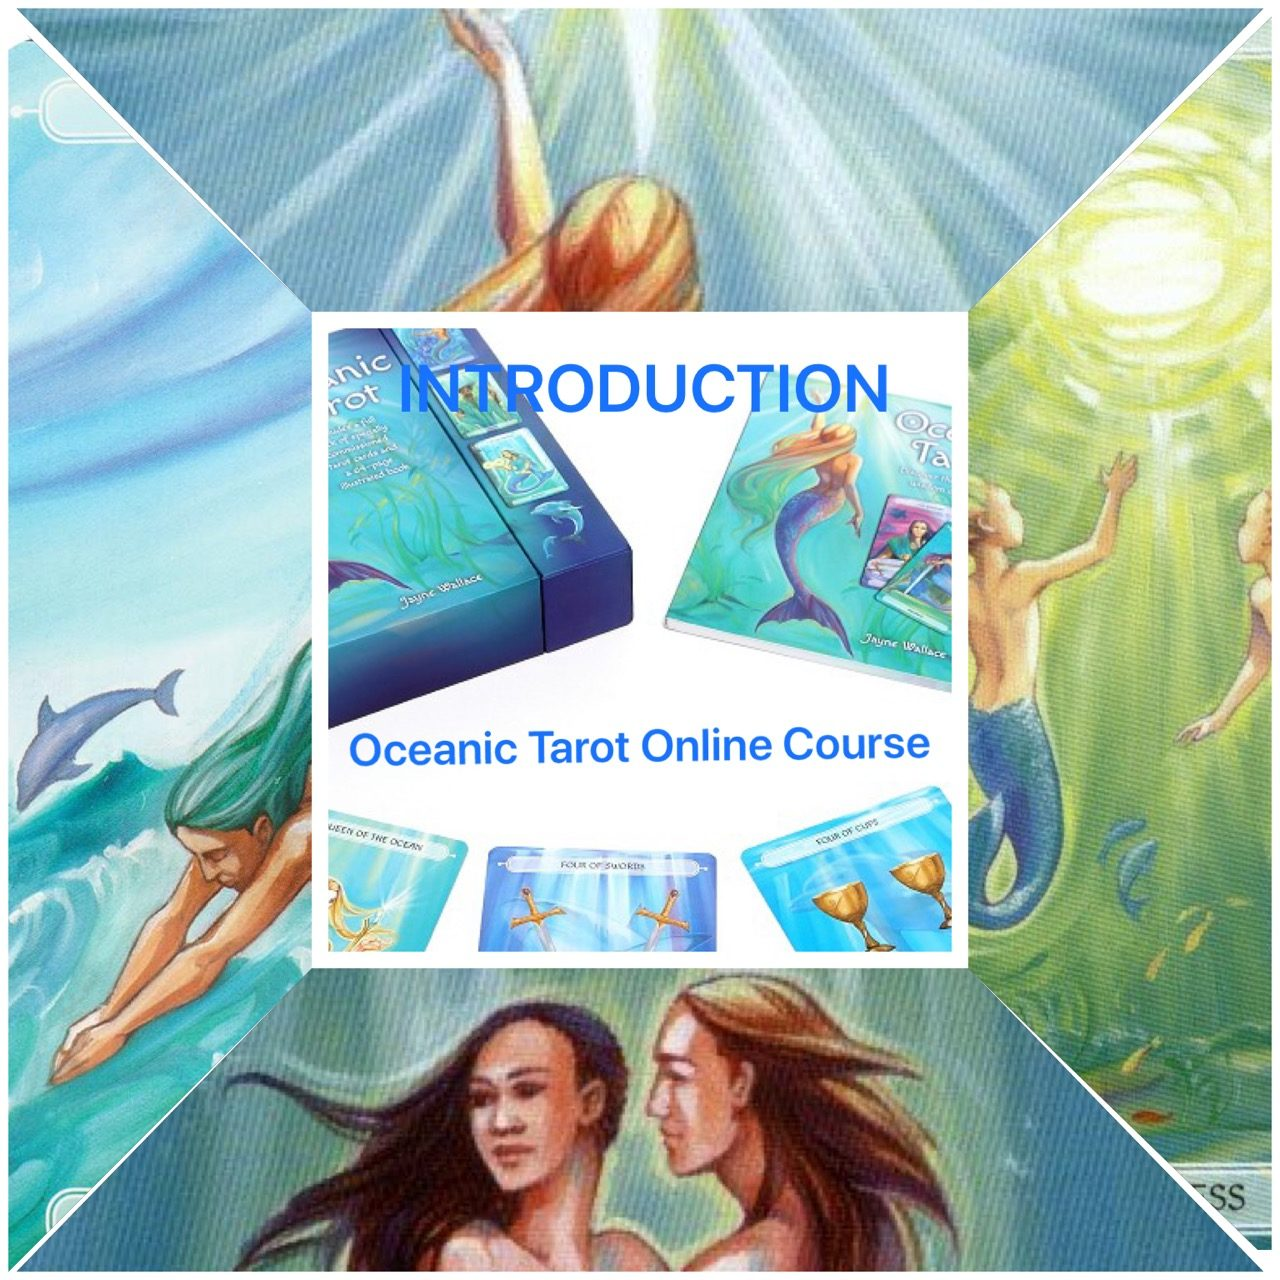 Introducing The Oceanic Tarot by Jayne Wallace